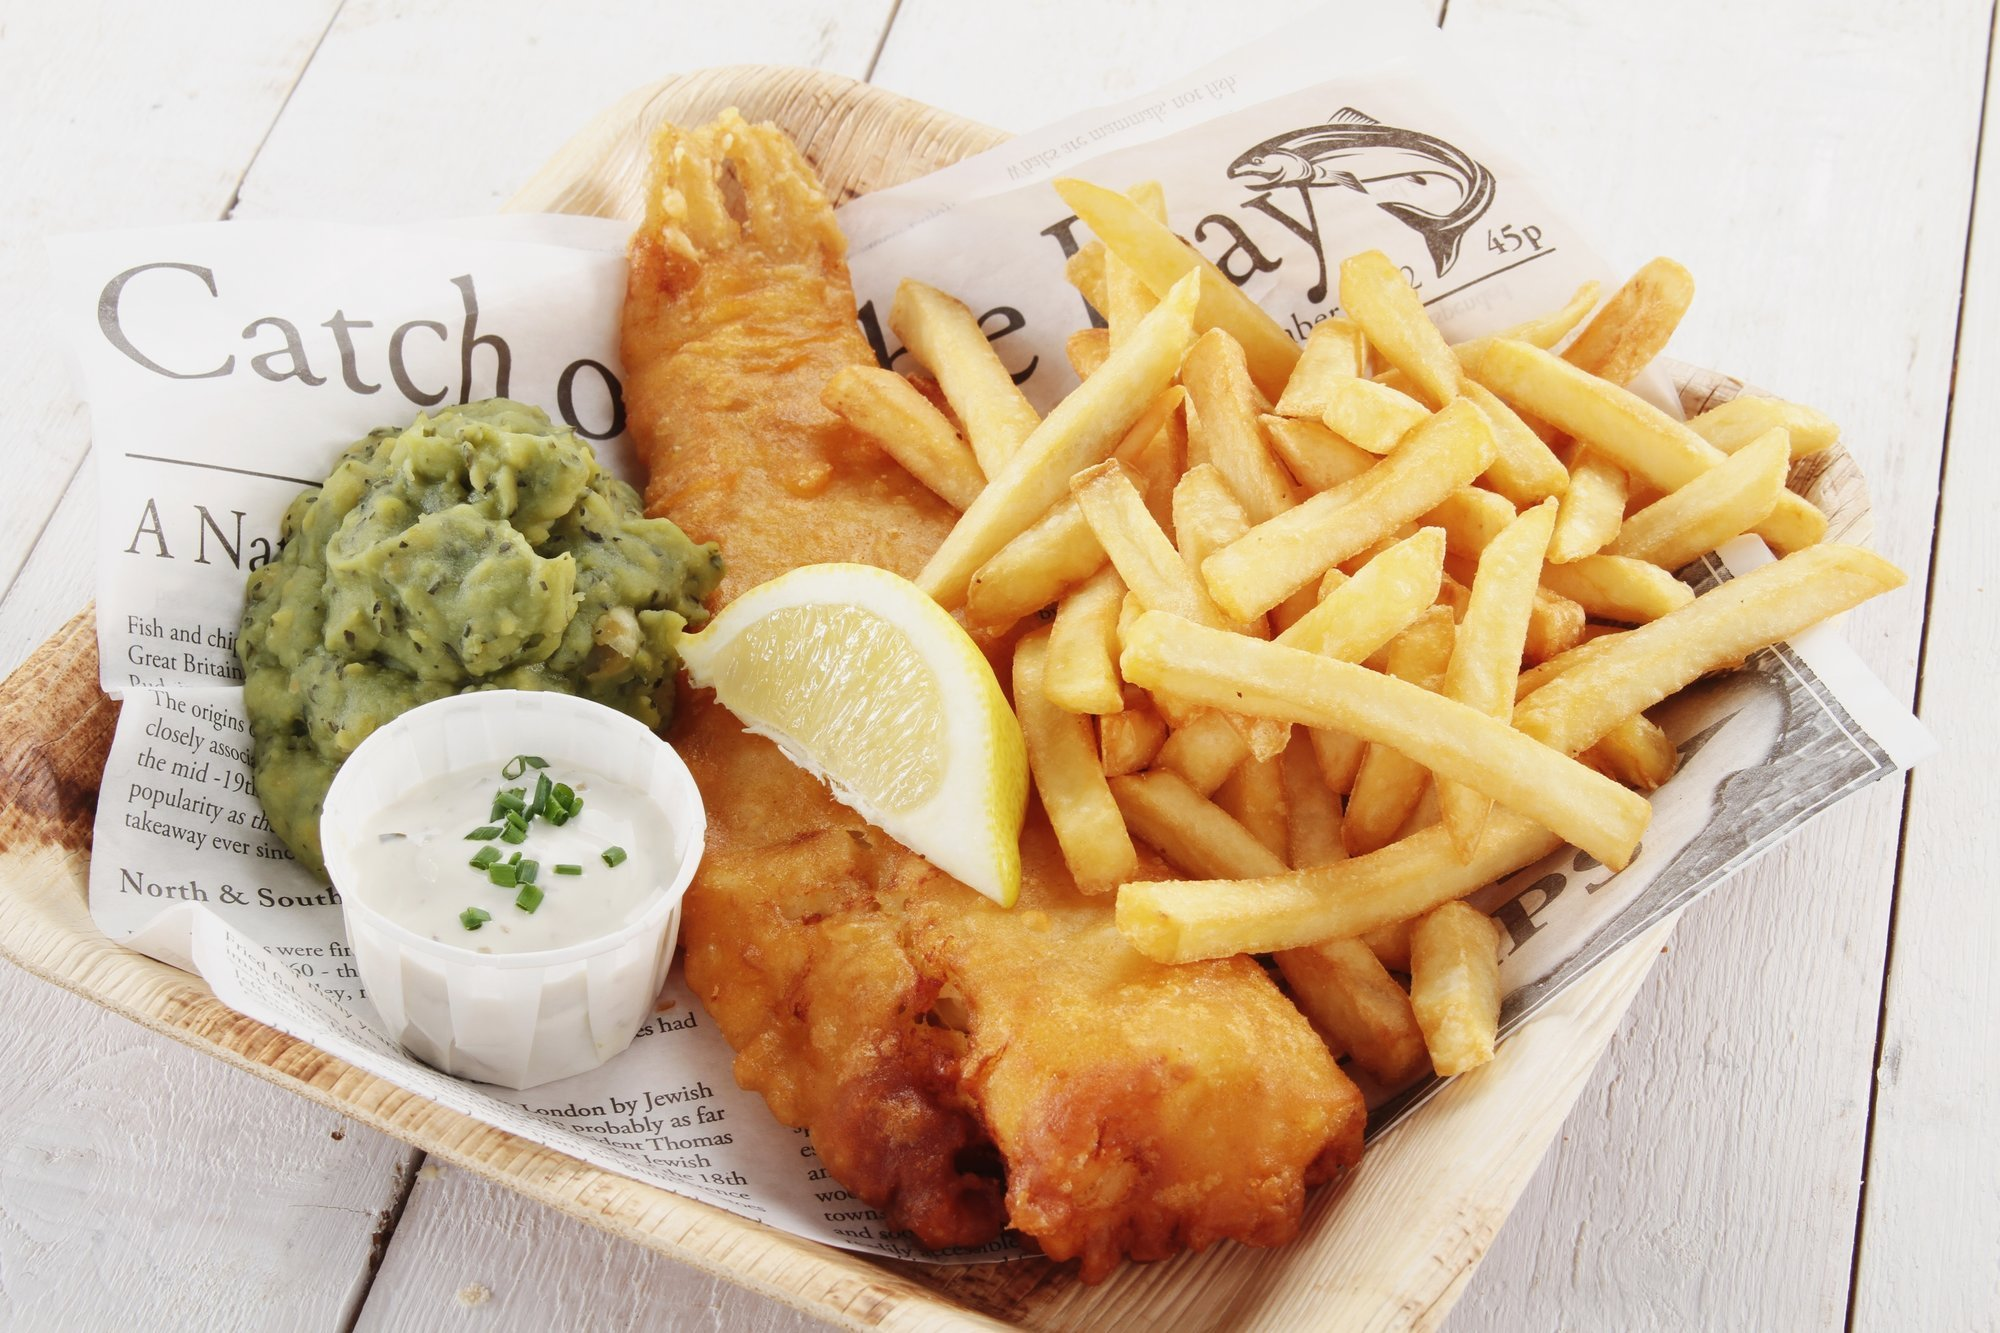 Delicious fish and chips being served at the restaurant